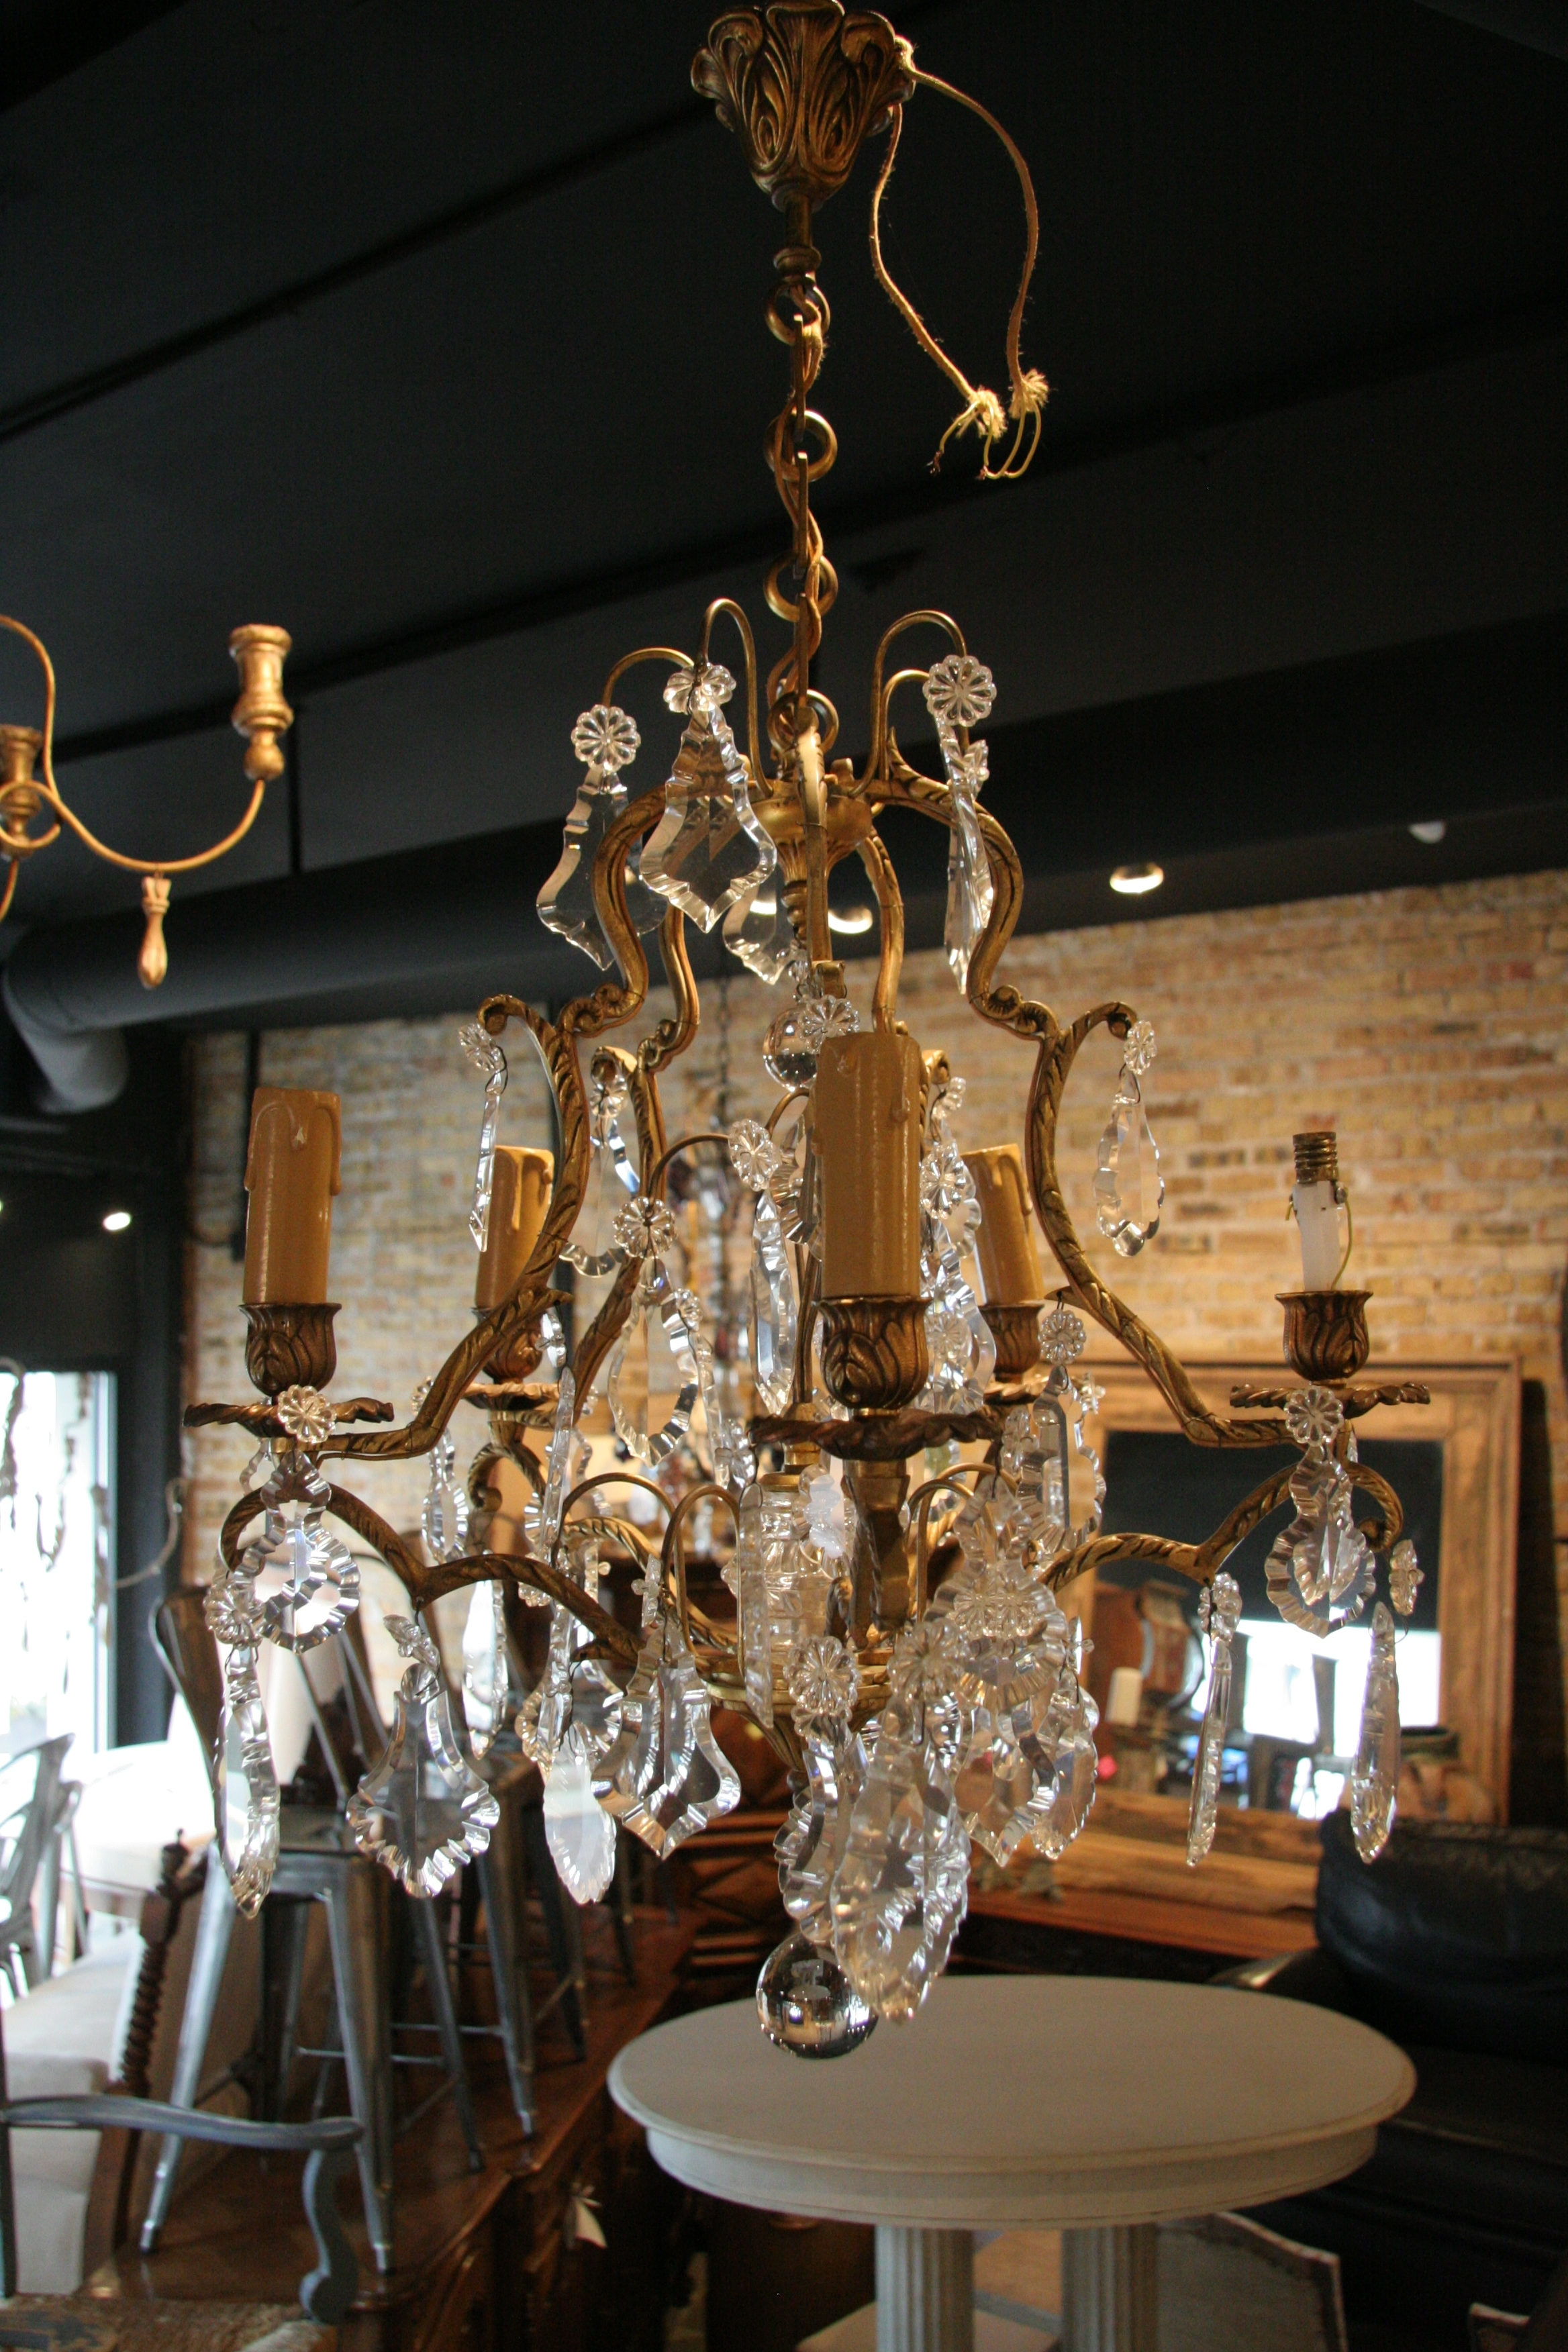 Brass And Crystal Chandeliers Regarding Most Current Antique French 5 Light Brass And Crystal Chandelier – Sold – (View 4 of 20)